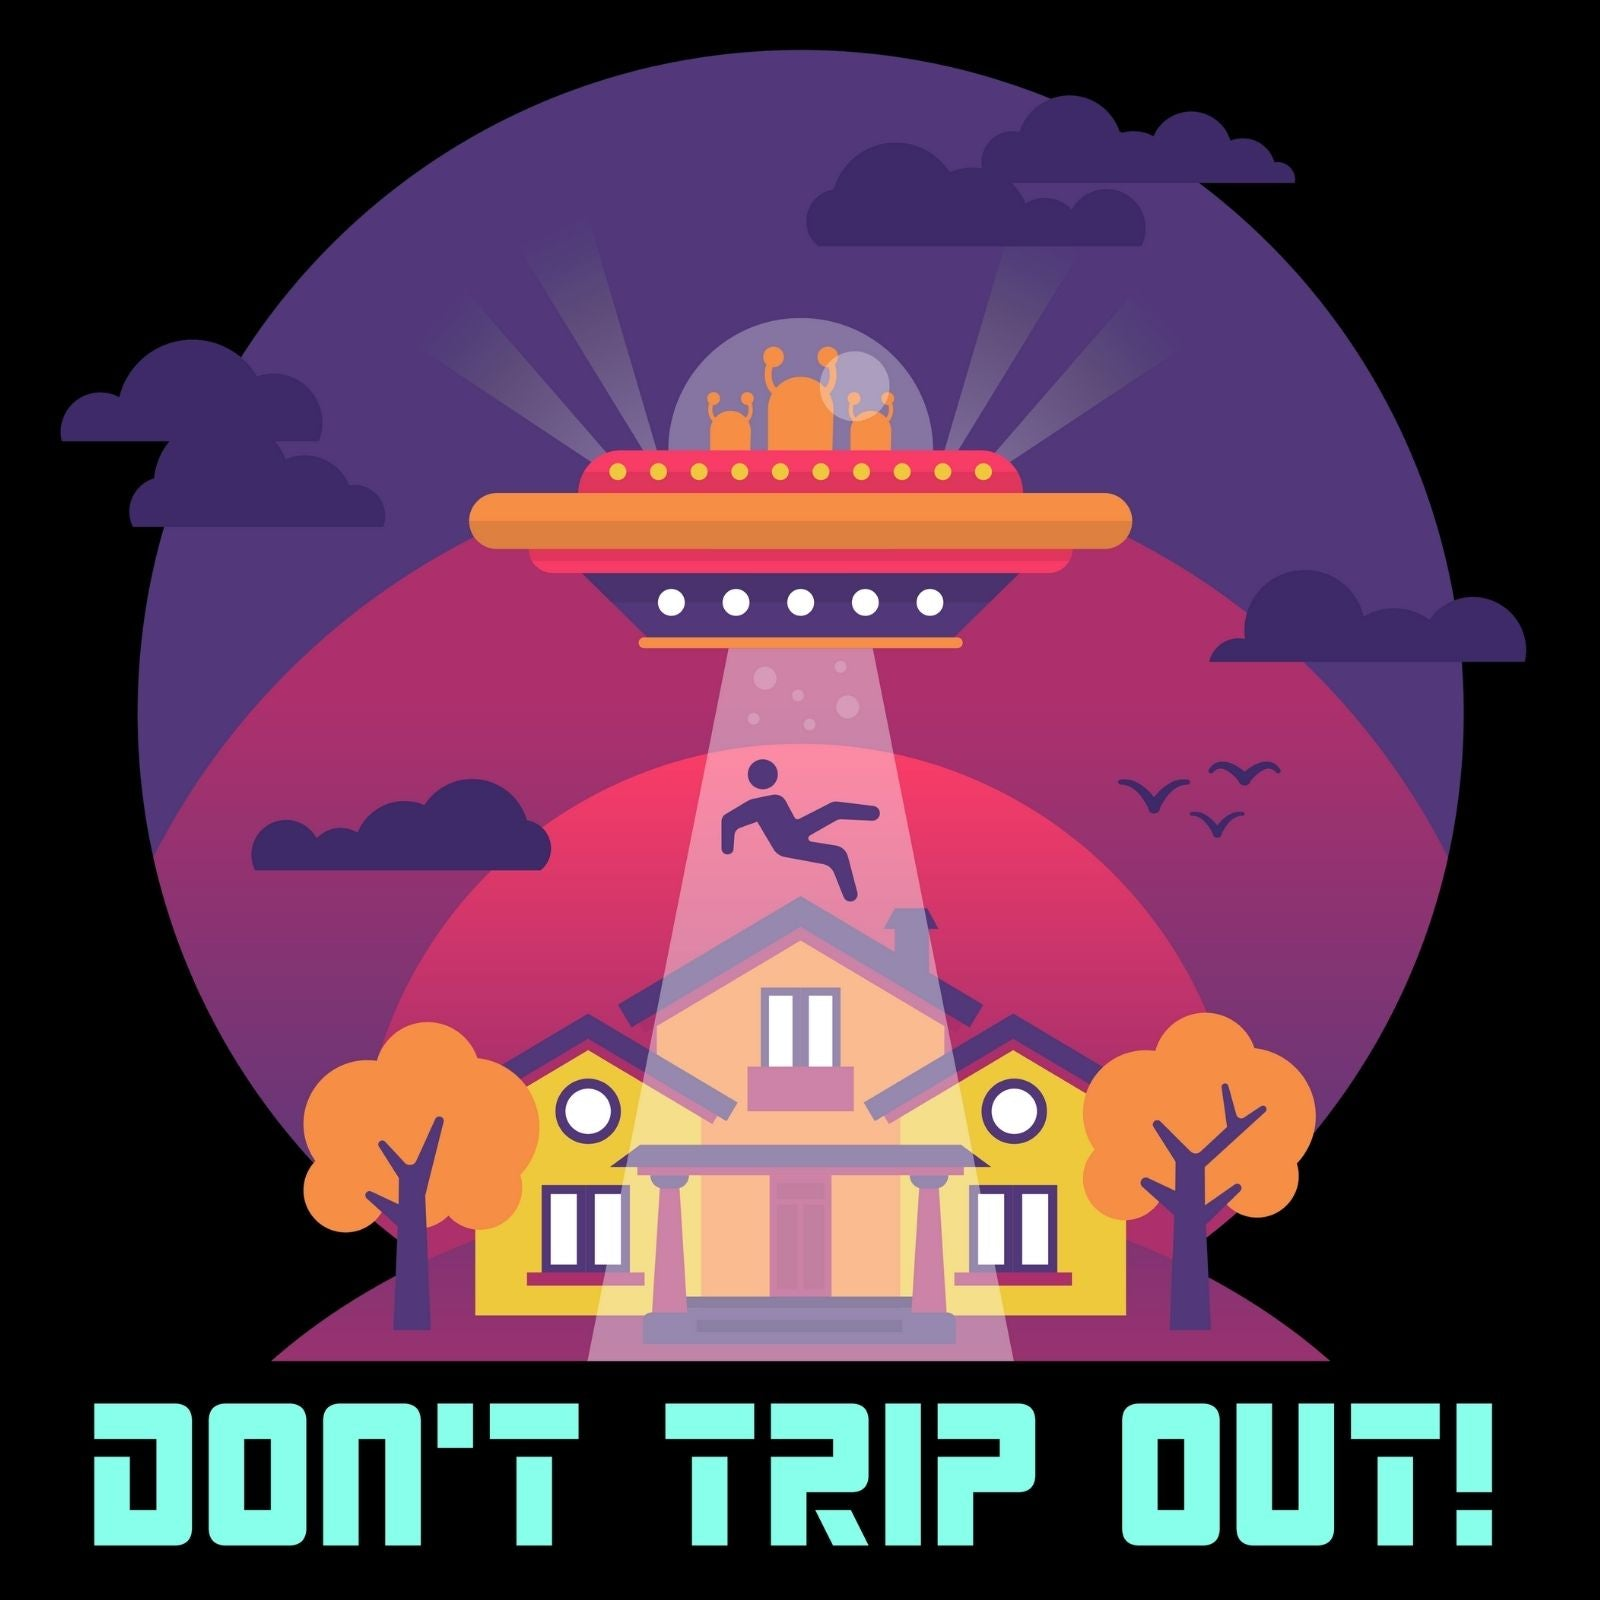 Don't Trip Out 2! - Bastard Graphics